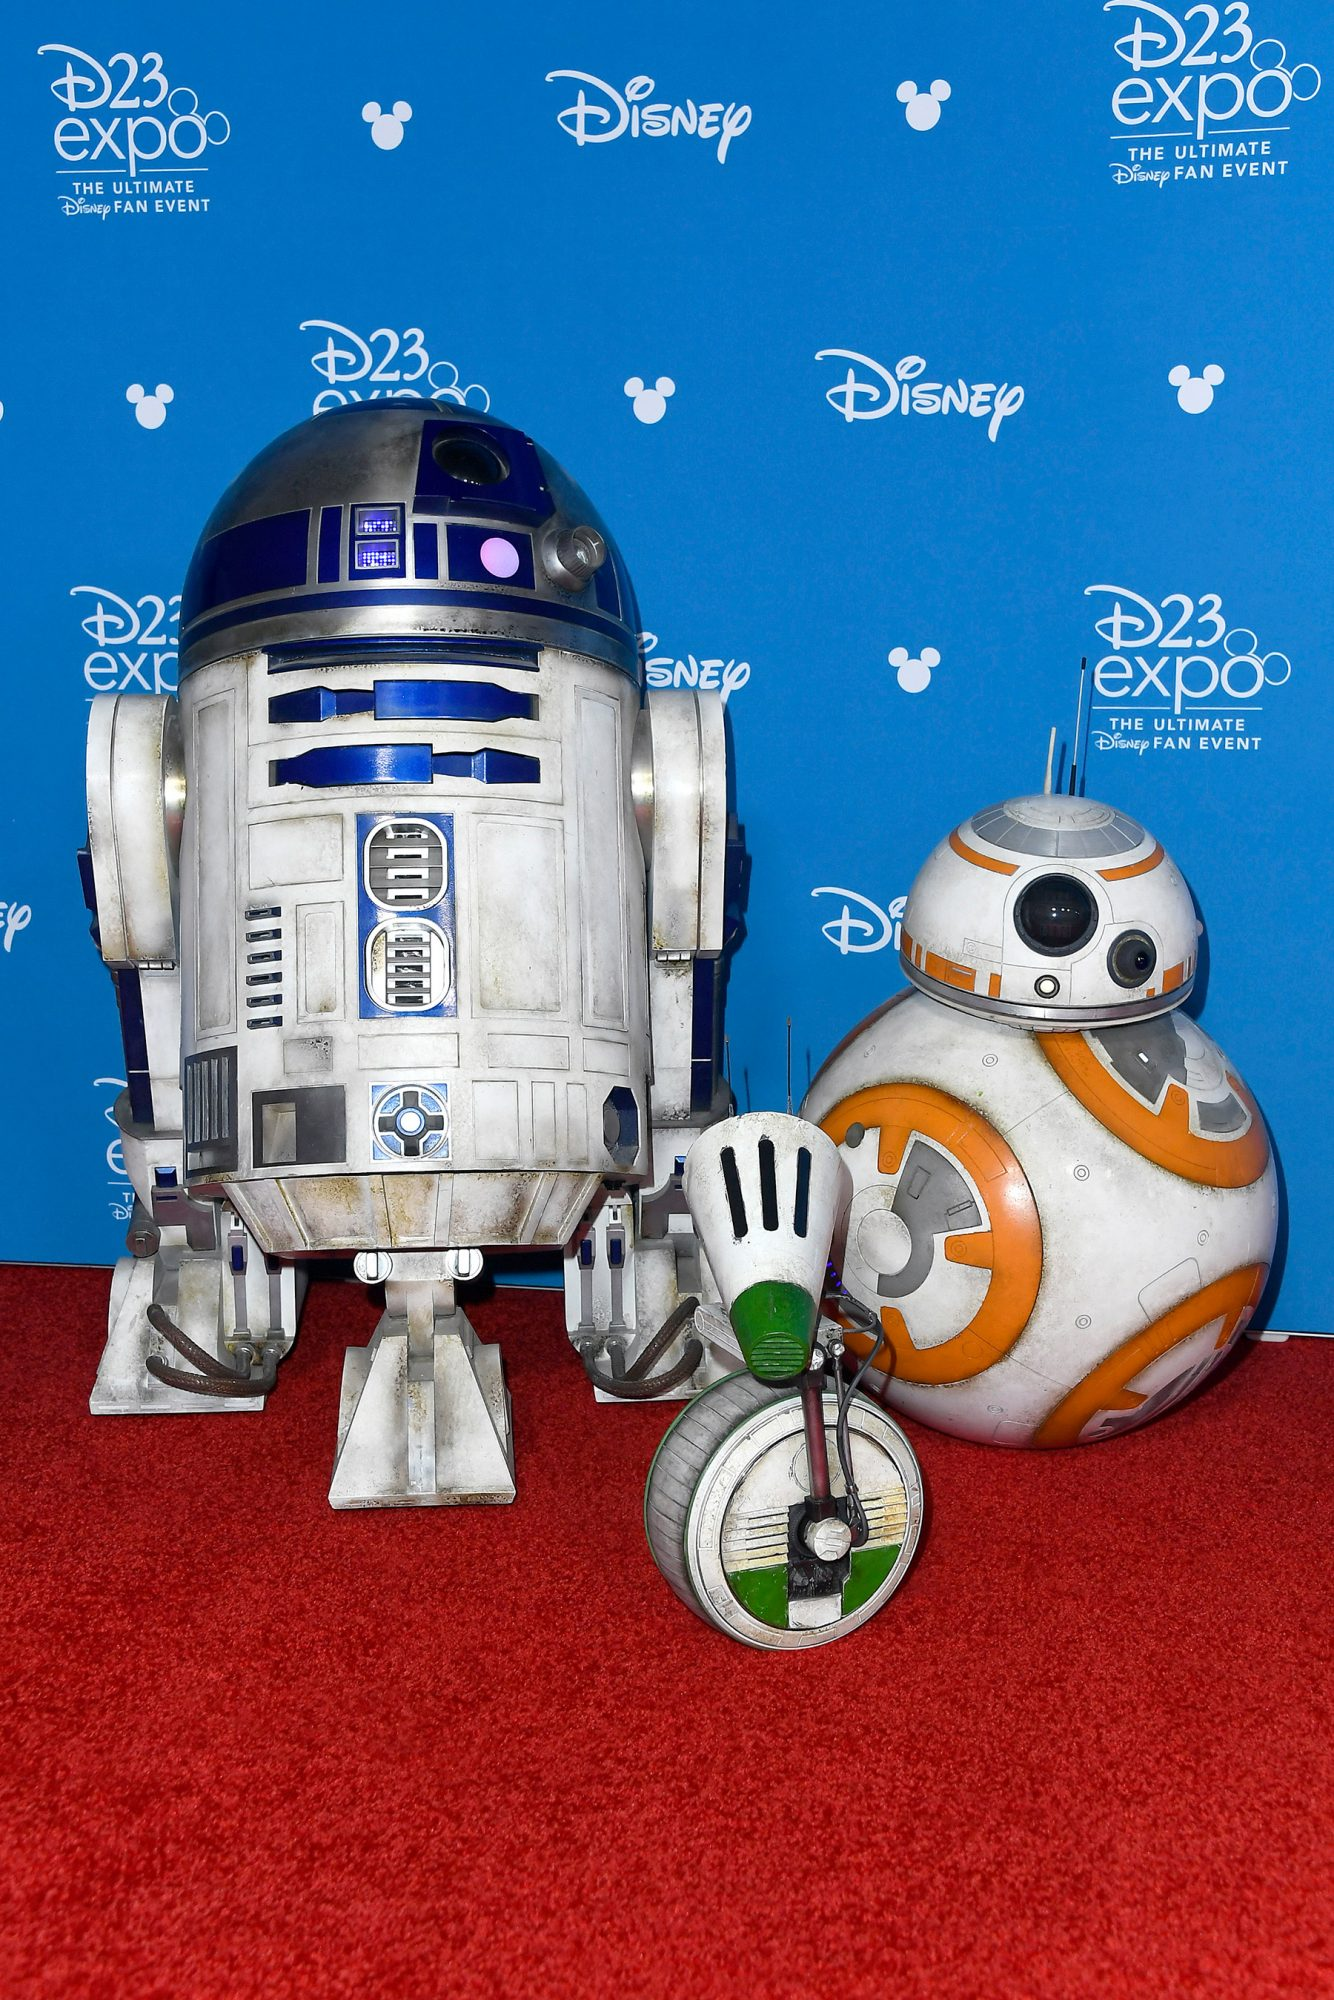 R2-D2 and BB-8